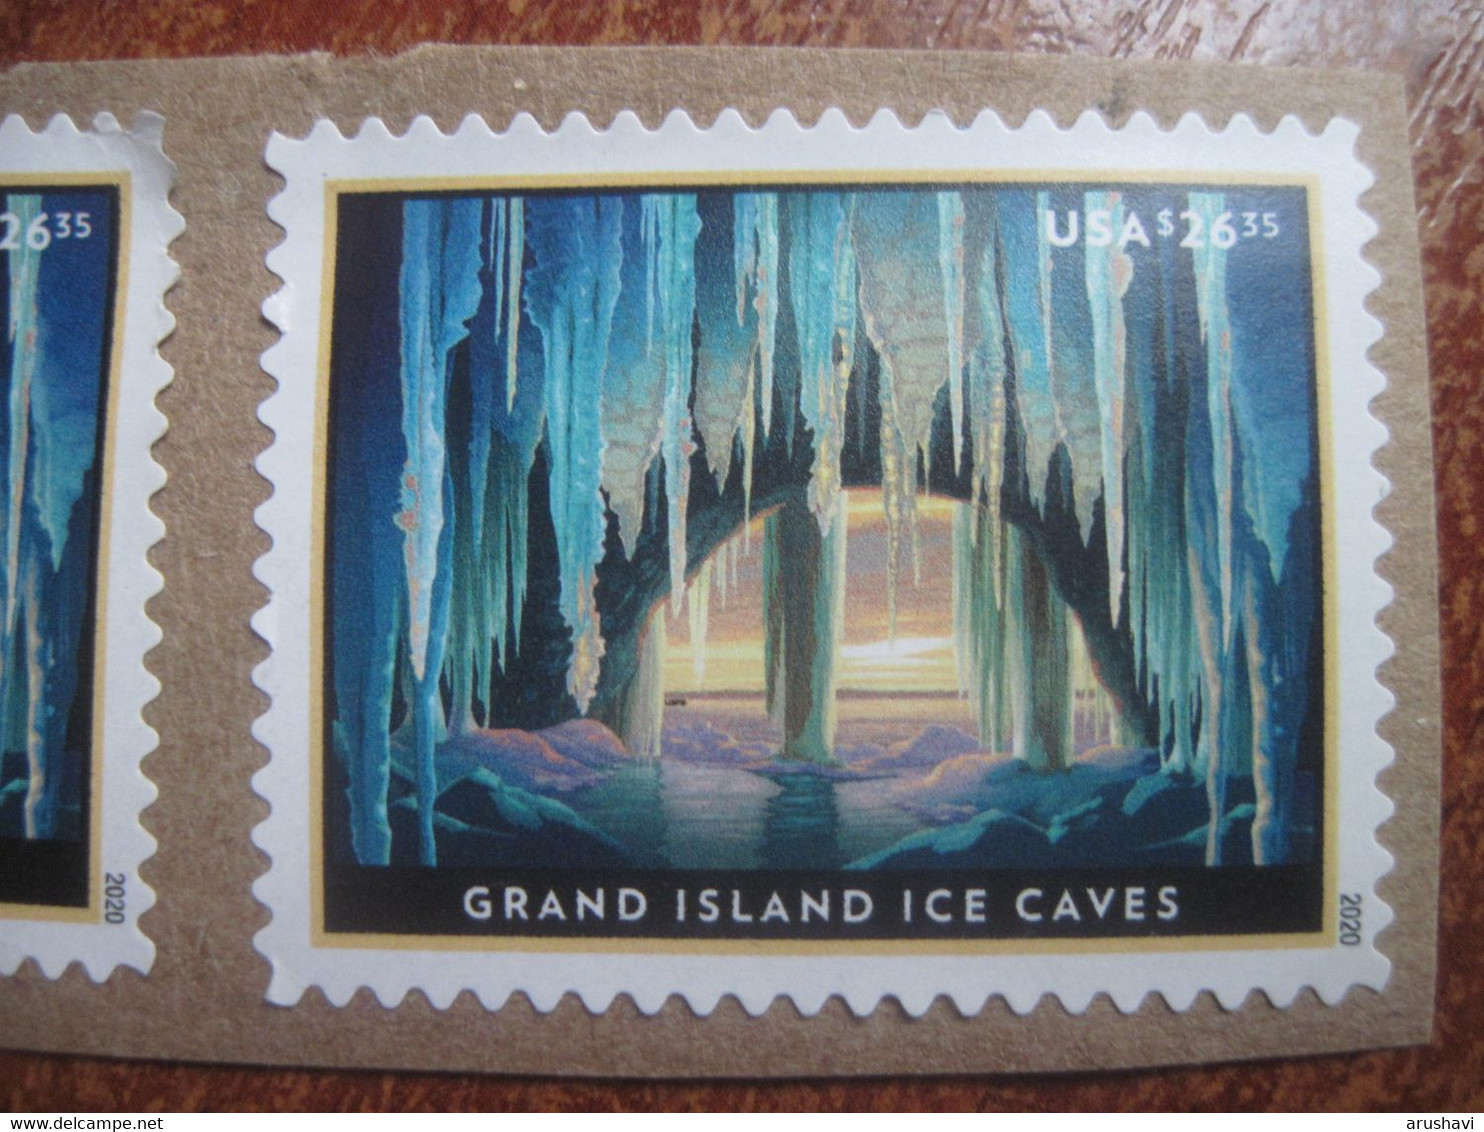 USA 2020 Grand Island Ice Caves  High Value Stamps USED On Paper - Oblitérés